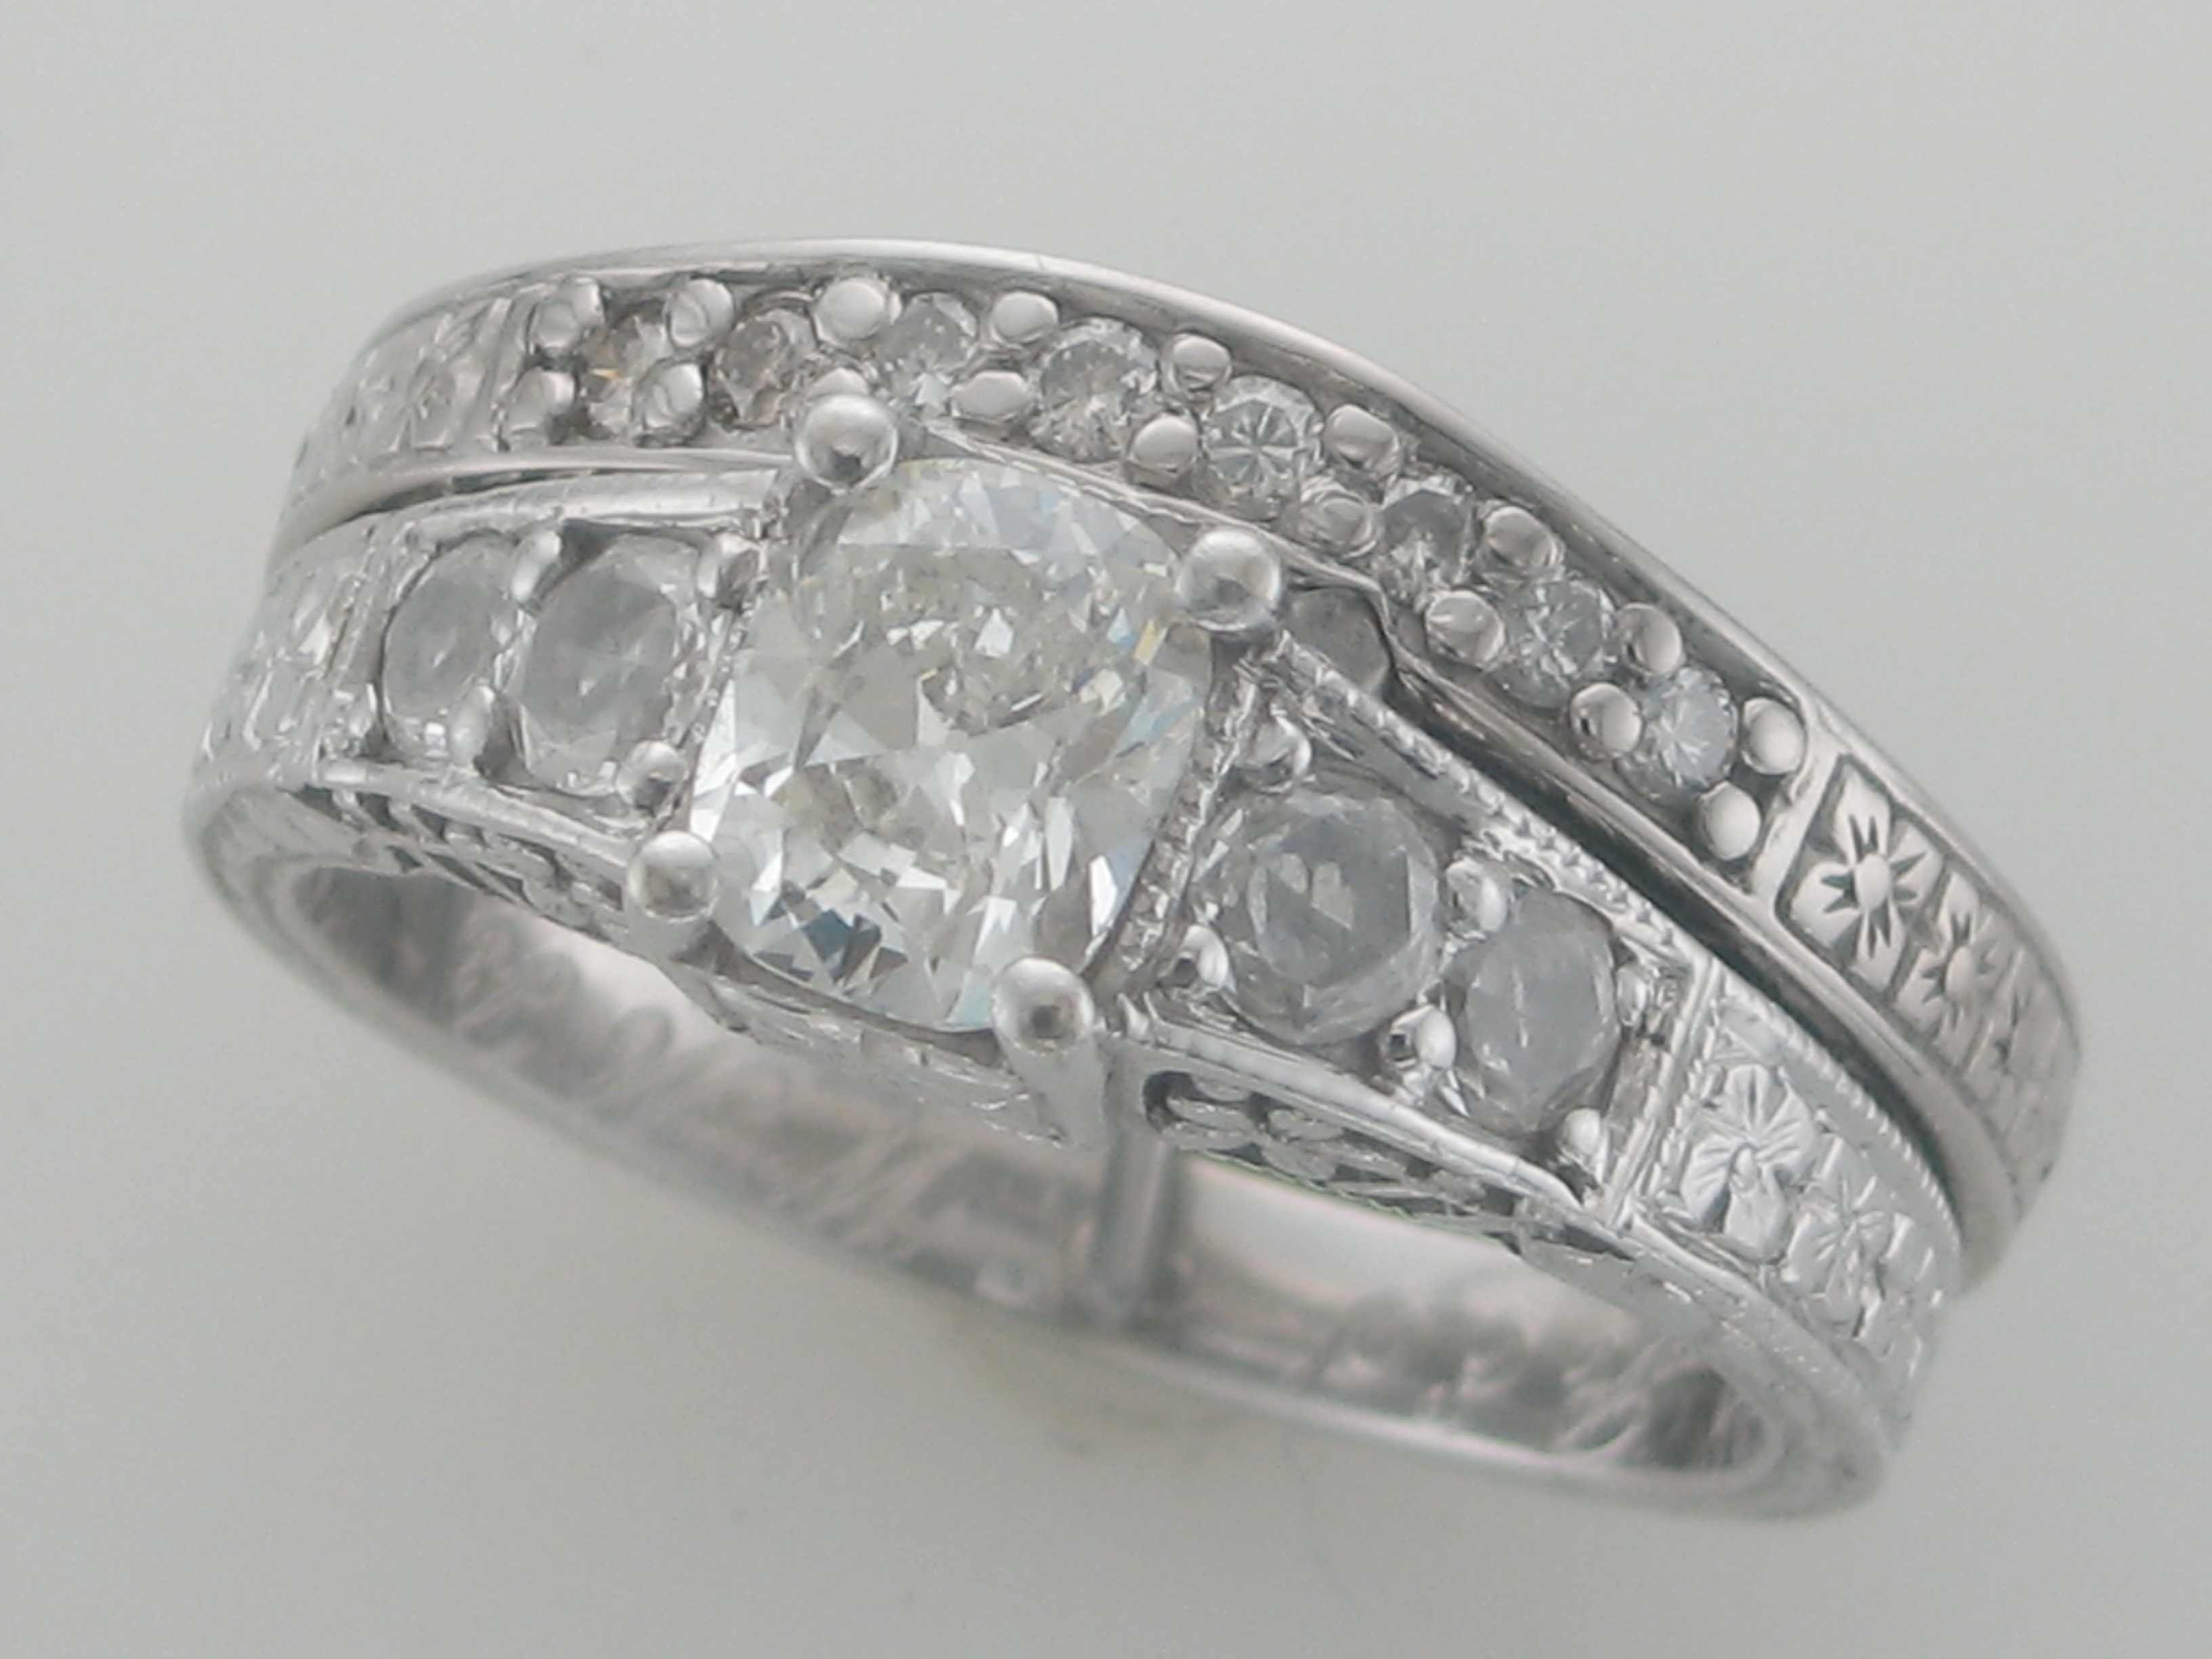 Carved Engagement Ring & Band